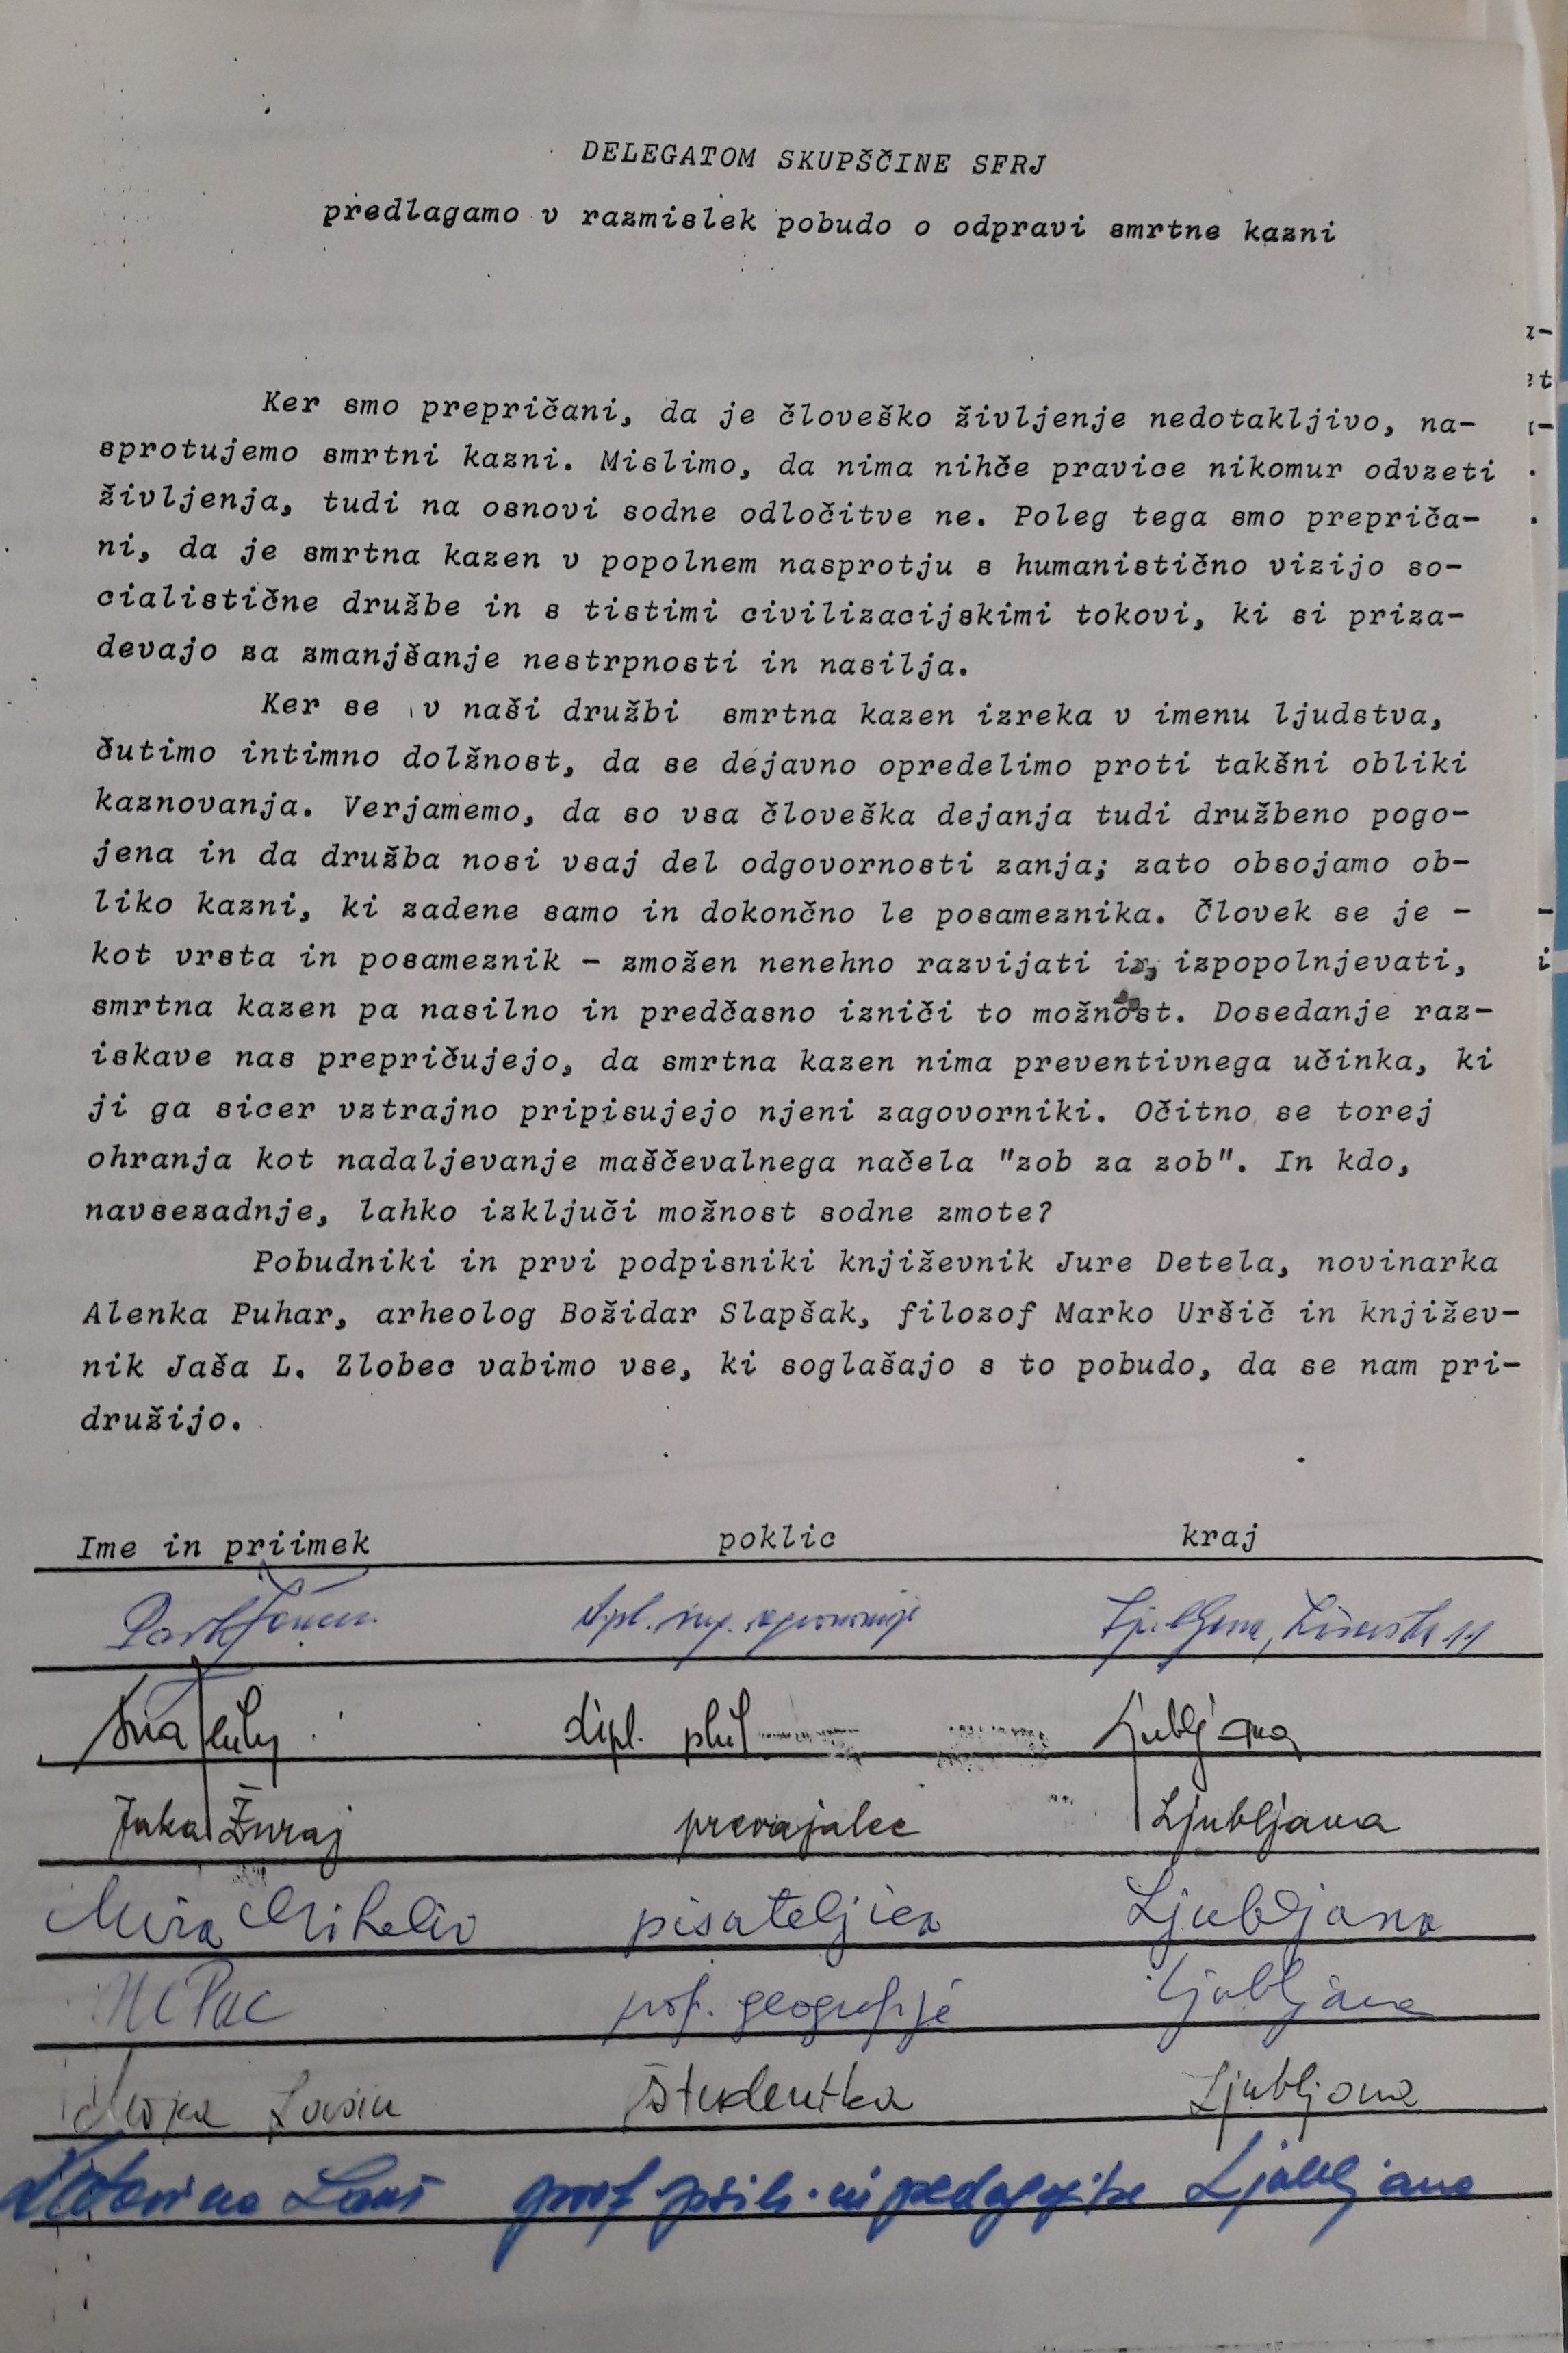 Petition for the abolition of the death penalty in Yugoslavia, 1983. Manuscript